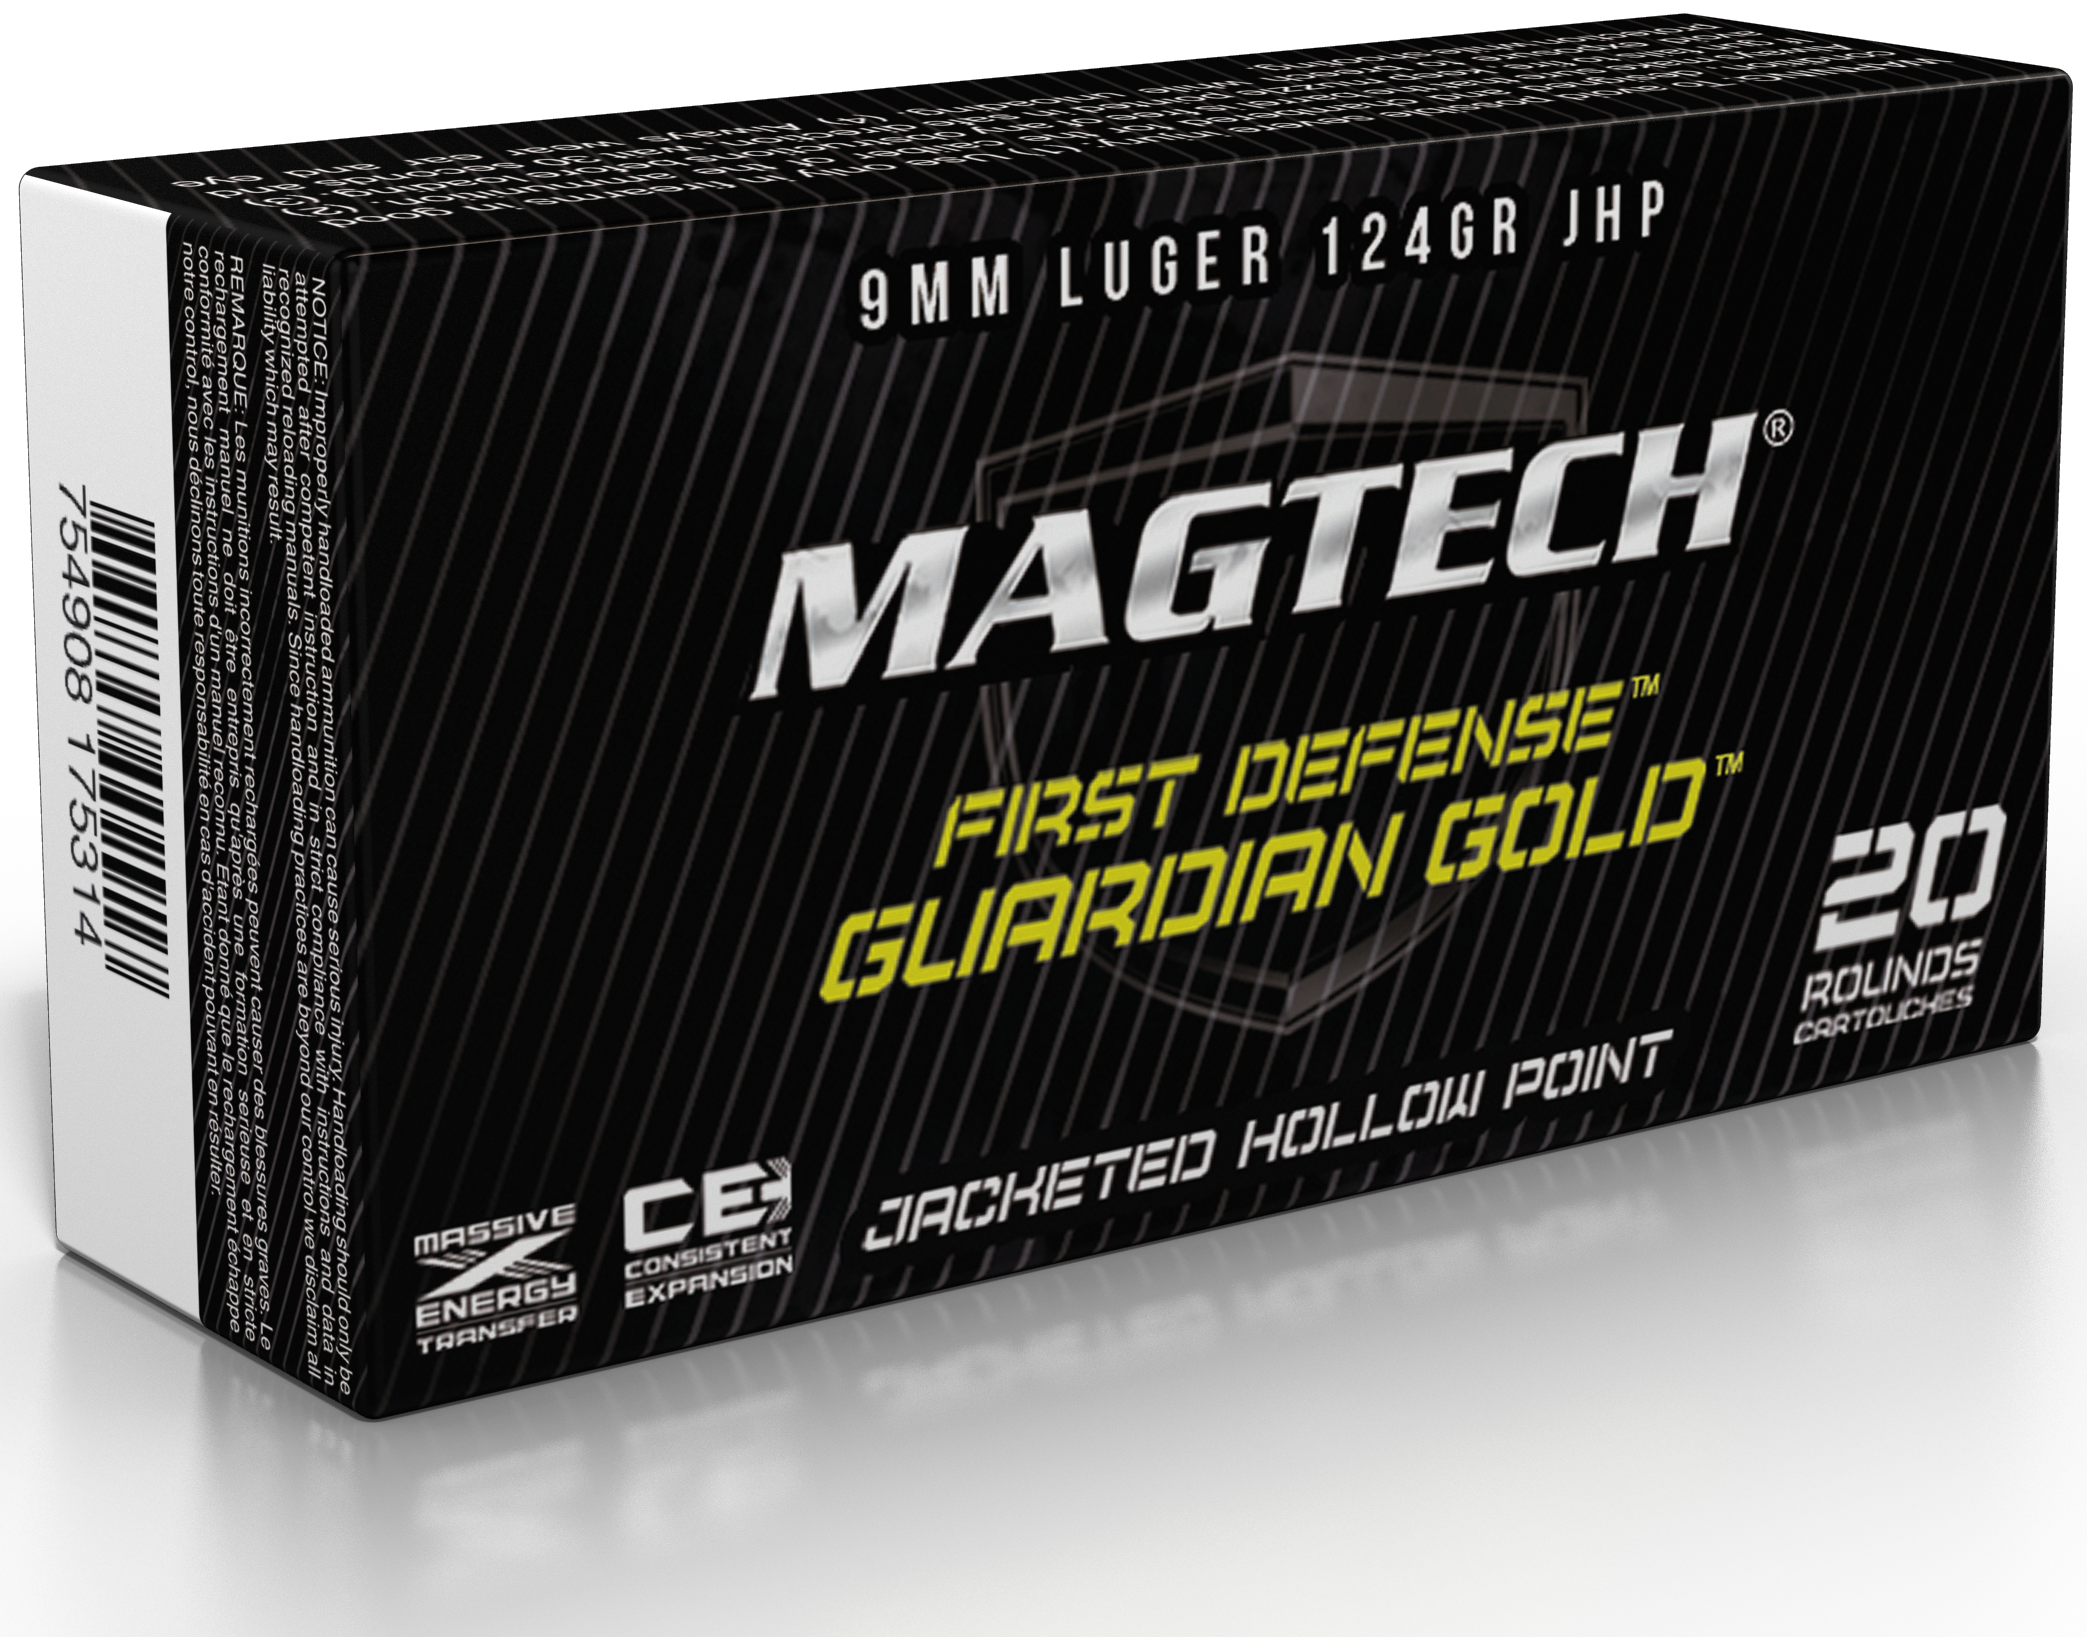 Magtech Ammunition – Rifle, Rimfire, Pistol and Revolver